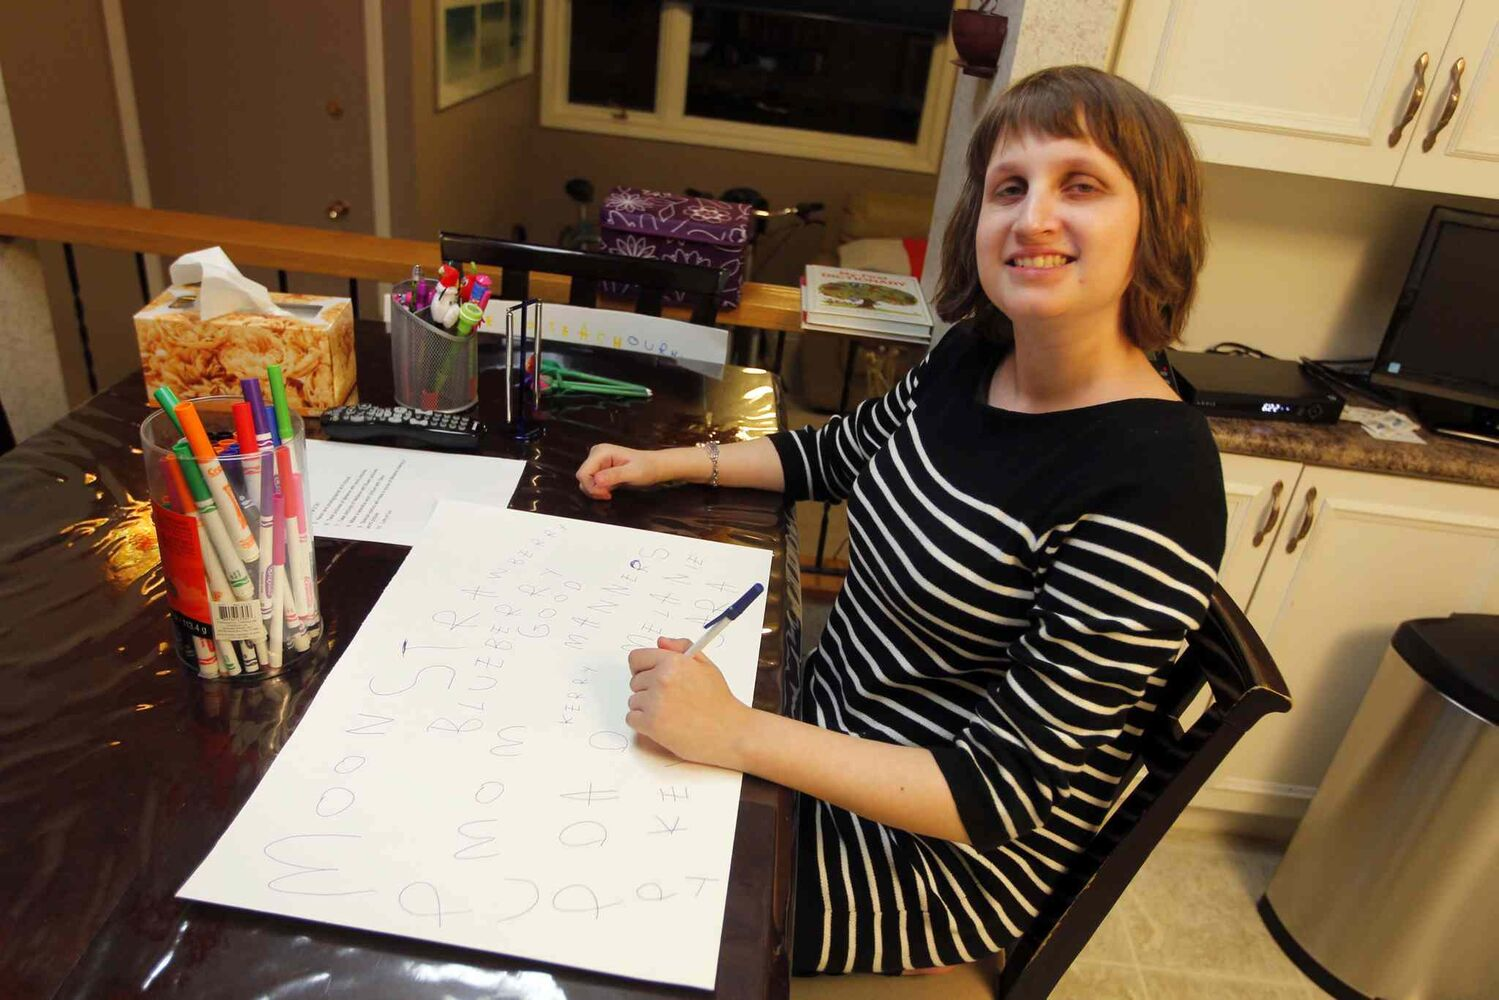 Melanie Halprin, 21, is autistic and is non-verbal. An artist in the Netherlands saw a card she designed and as a result, two pieces of her art were displayed in art show in Amsterdam where thousands of people saw it.